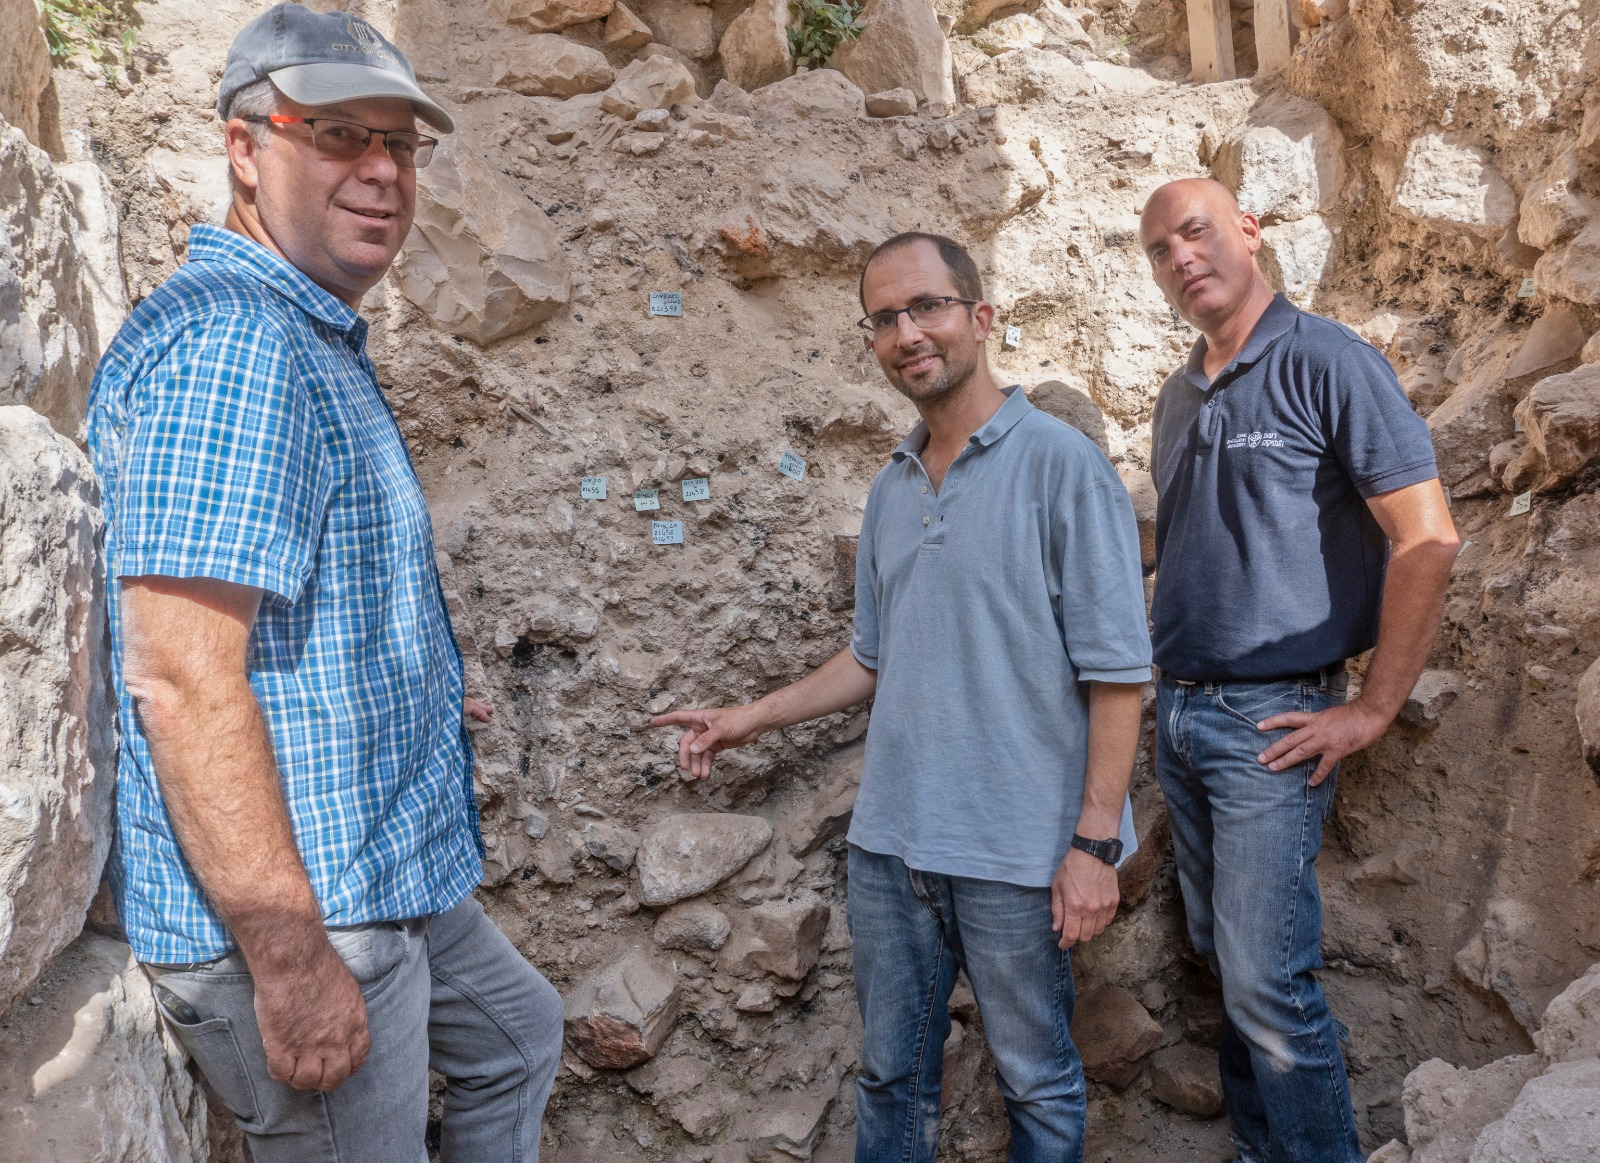 Left to Right-Prof. Gadot Yoav Vaknin Dr. Shalev. Photographer Shai Halevi Israel Antiquities Author